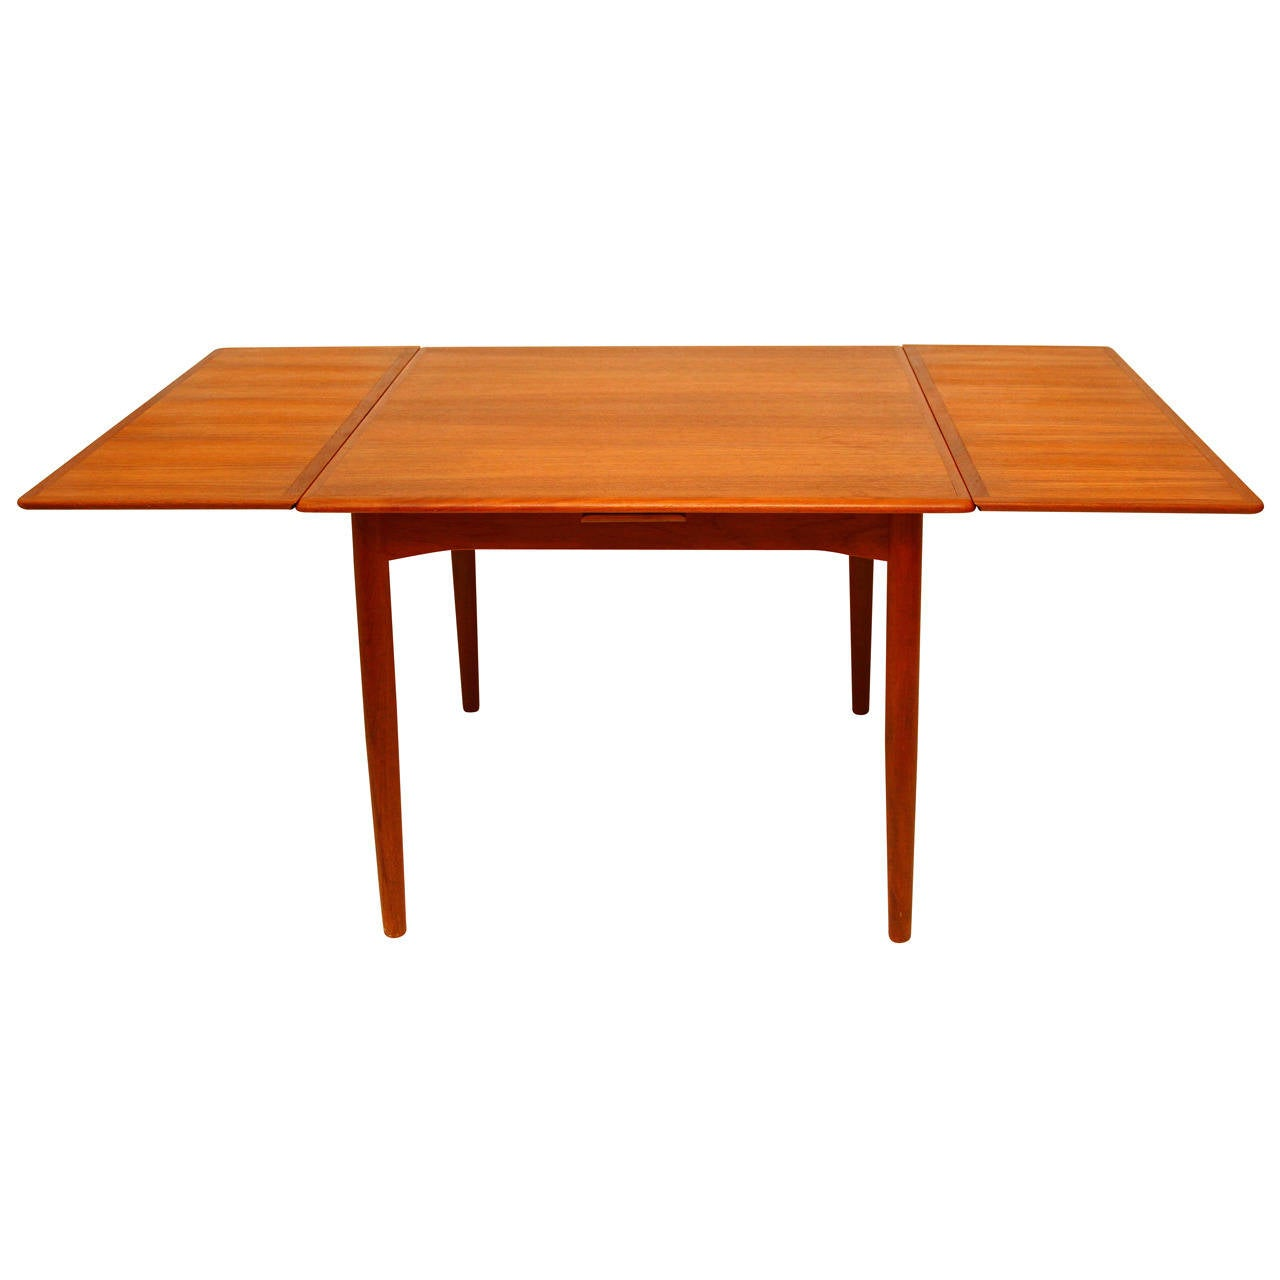 Extension dining table teak danish modern at 1stdibs - Extension tables dining room furniture ...